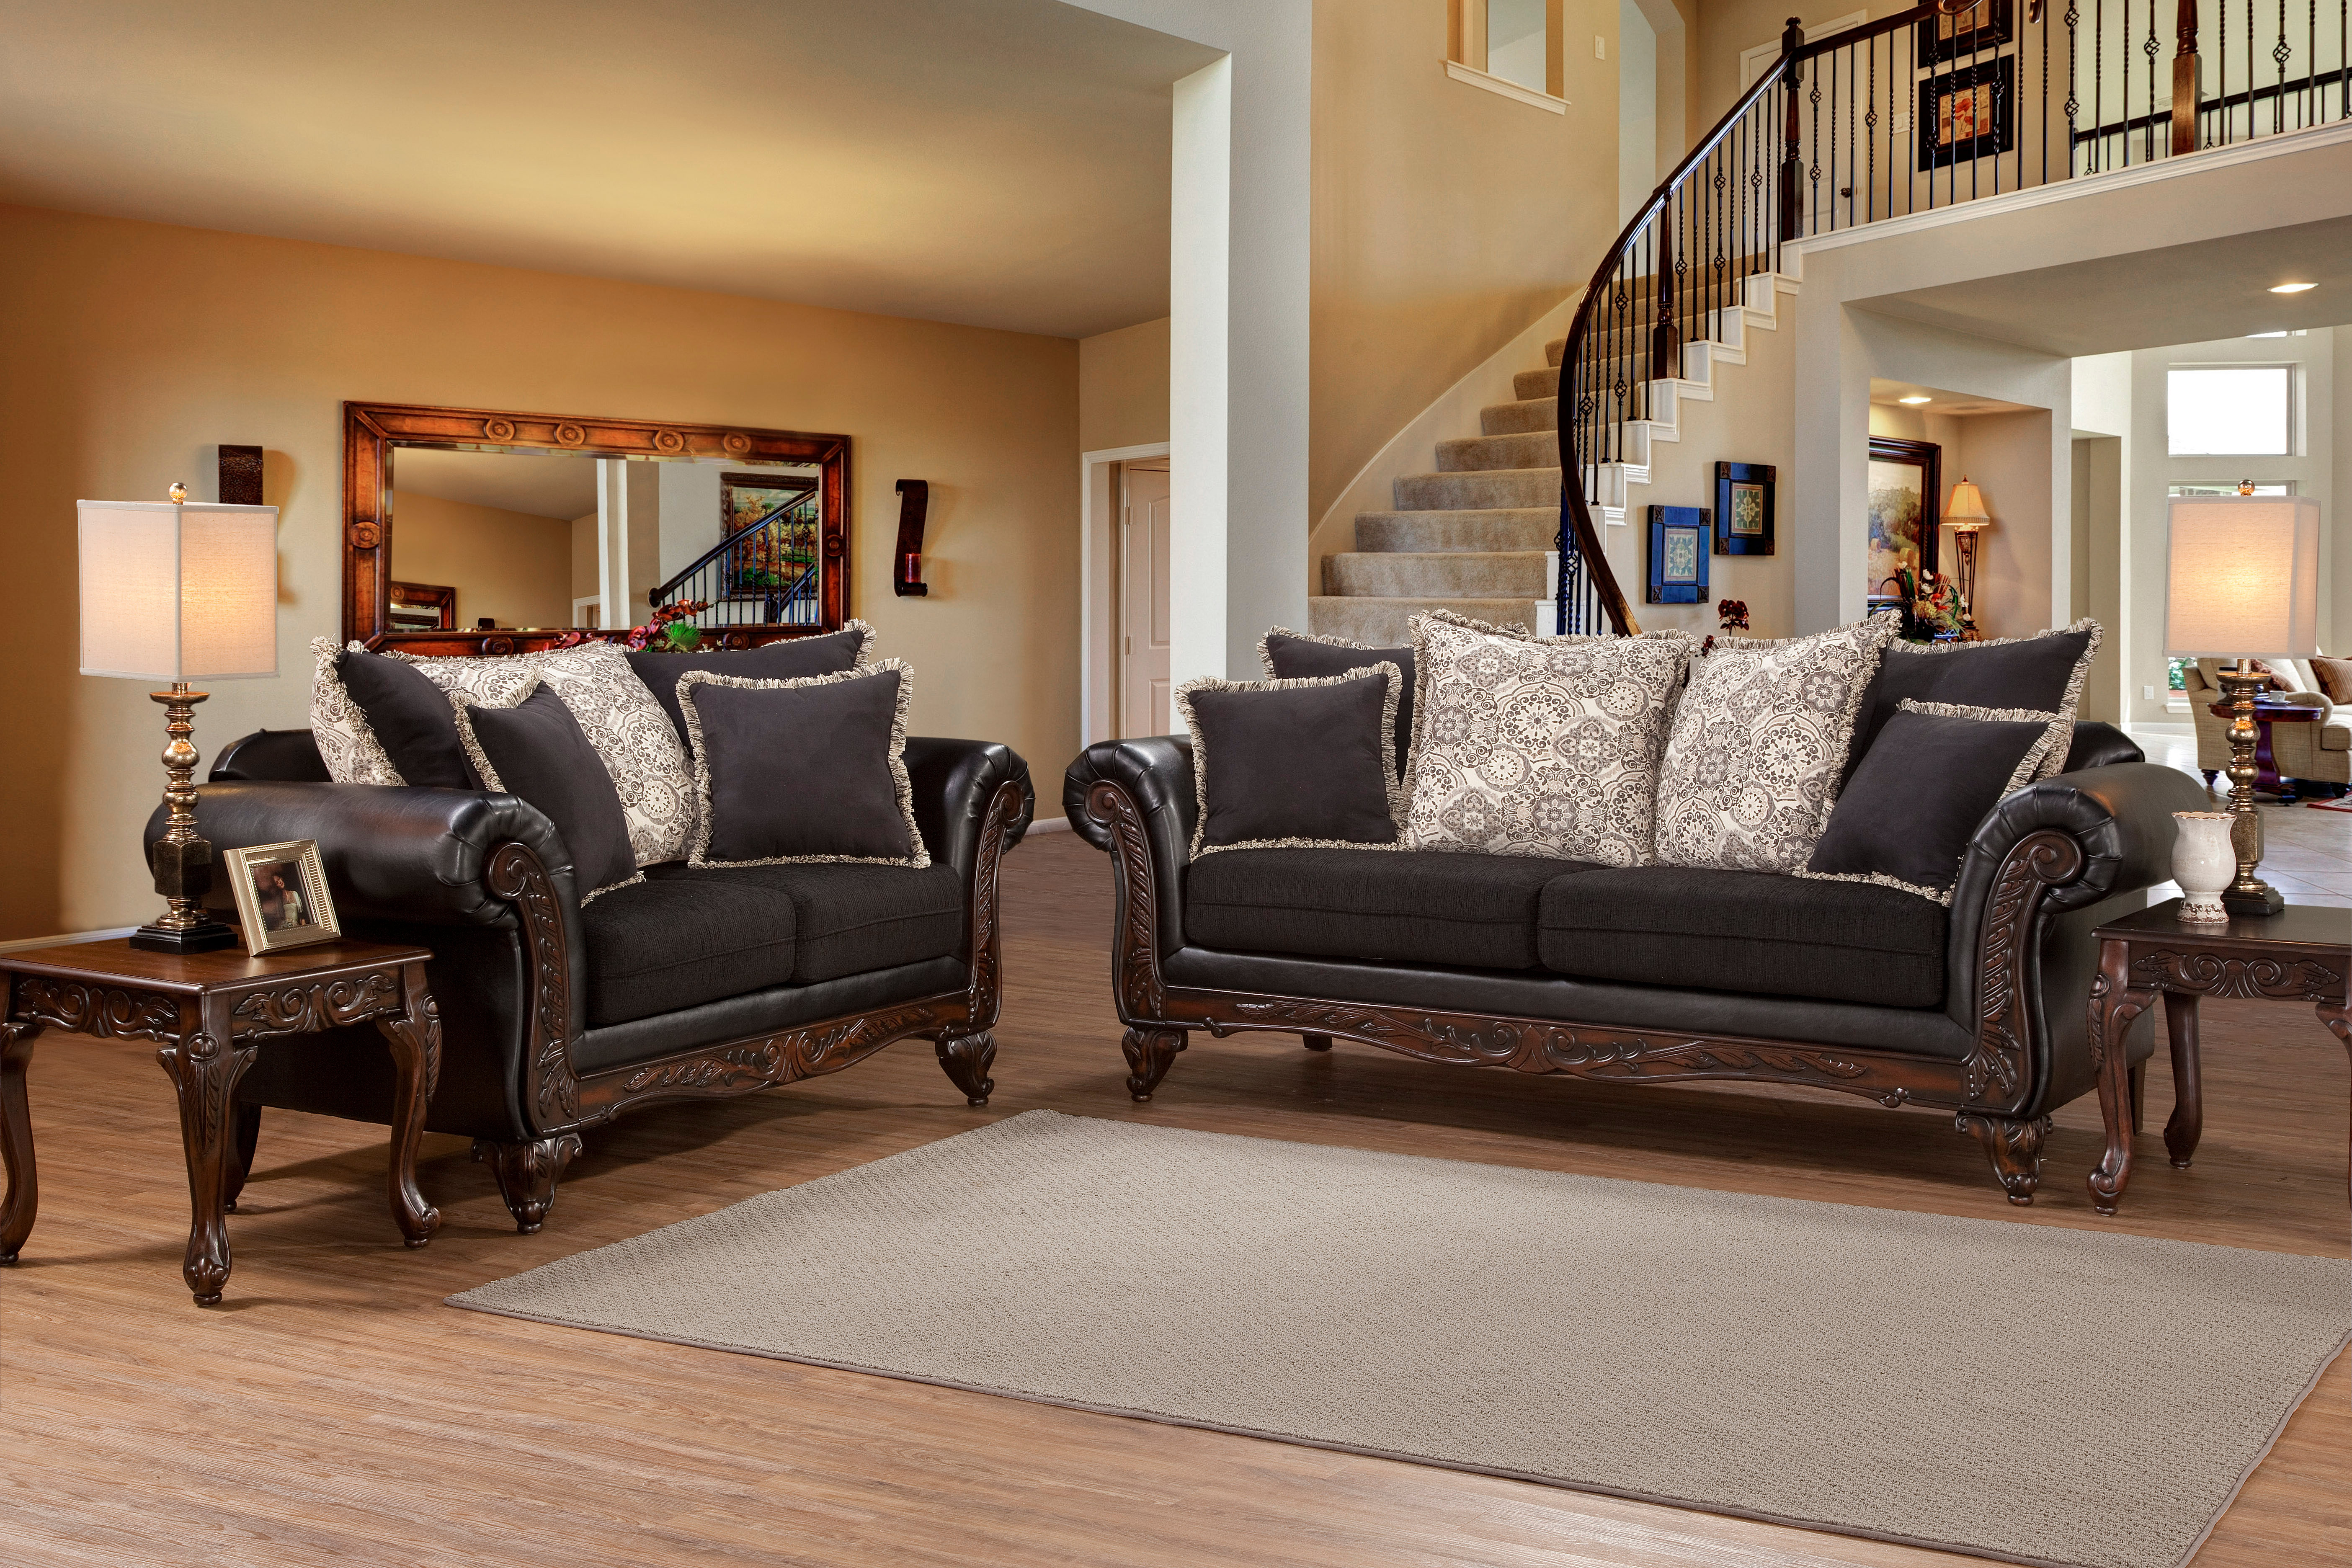 AAA Furniture Outlet Albany Sofas Bedrooms Kitchen Tables